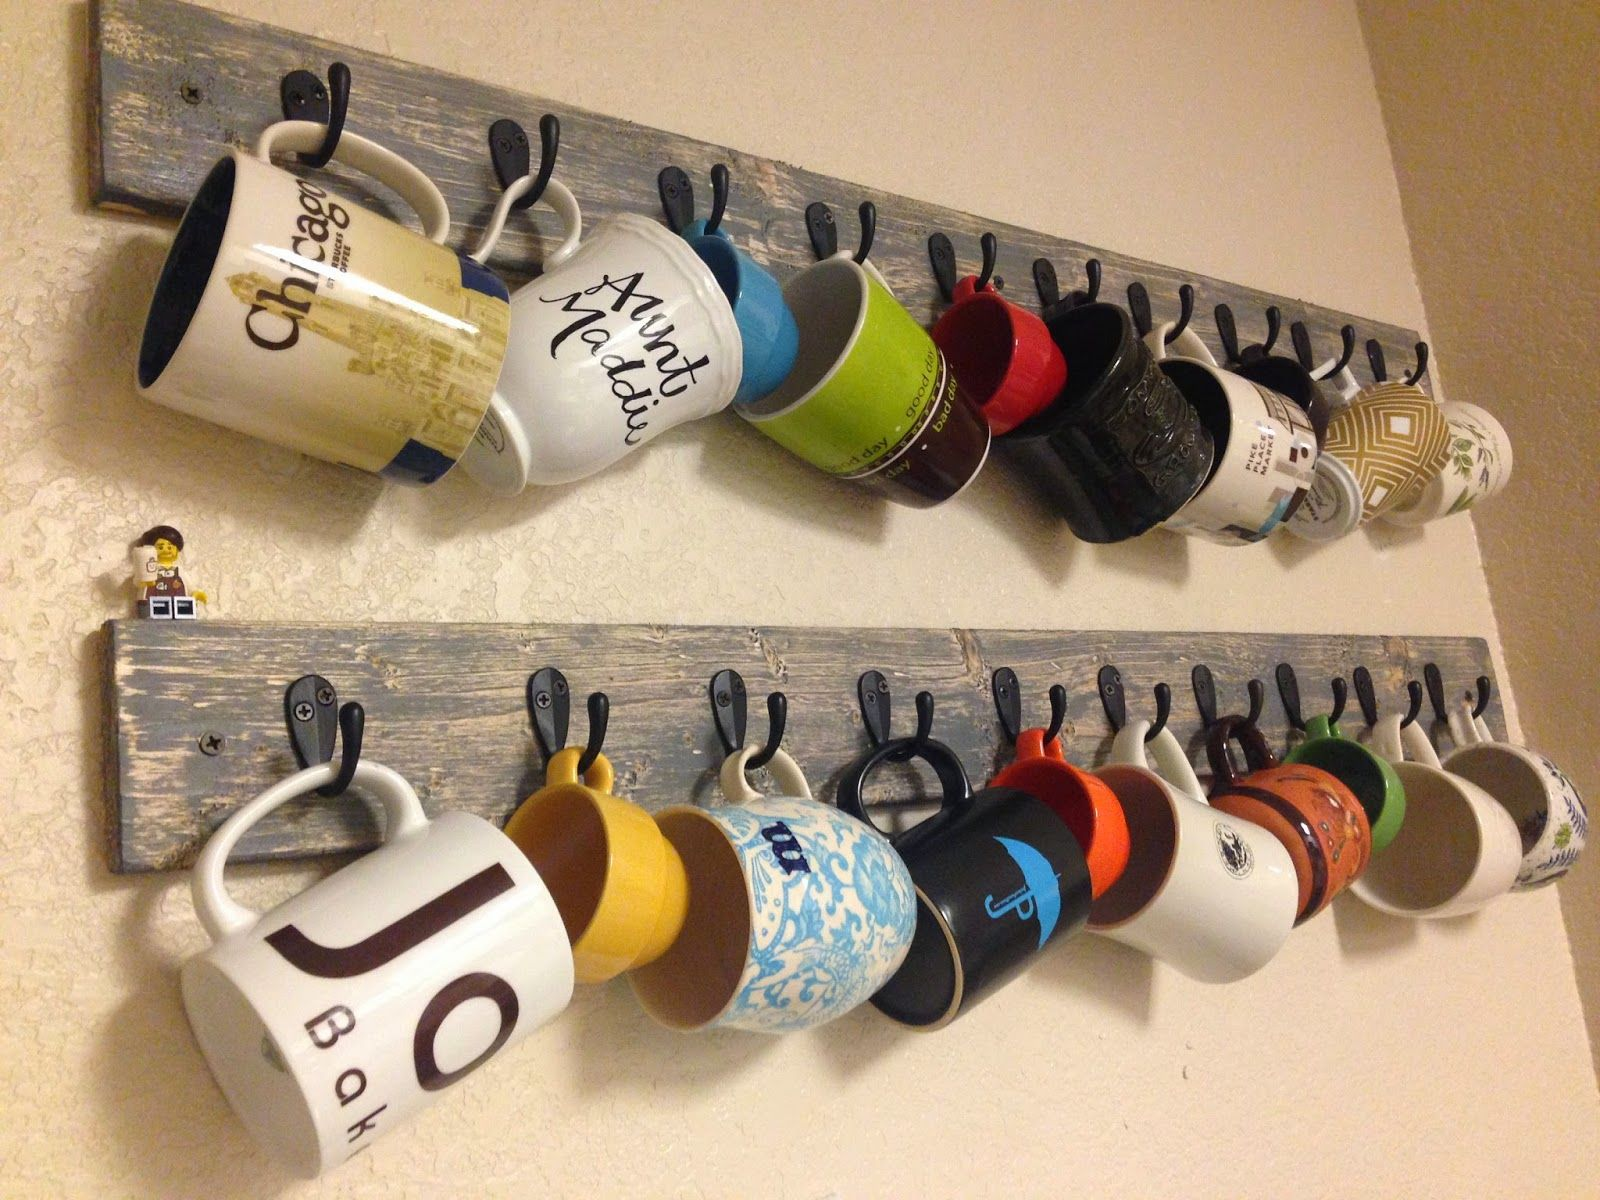 A Light That Shines Coffee Mug Racks Apartment Kitchen Organization Home Diy Organization Decor